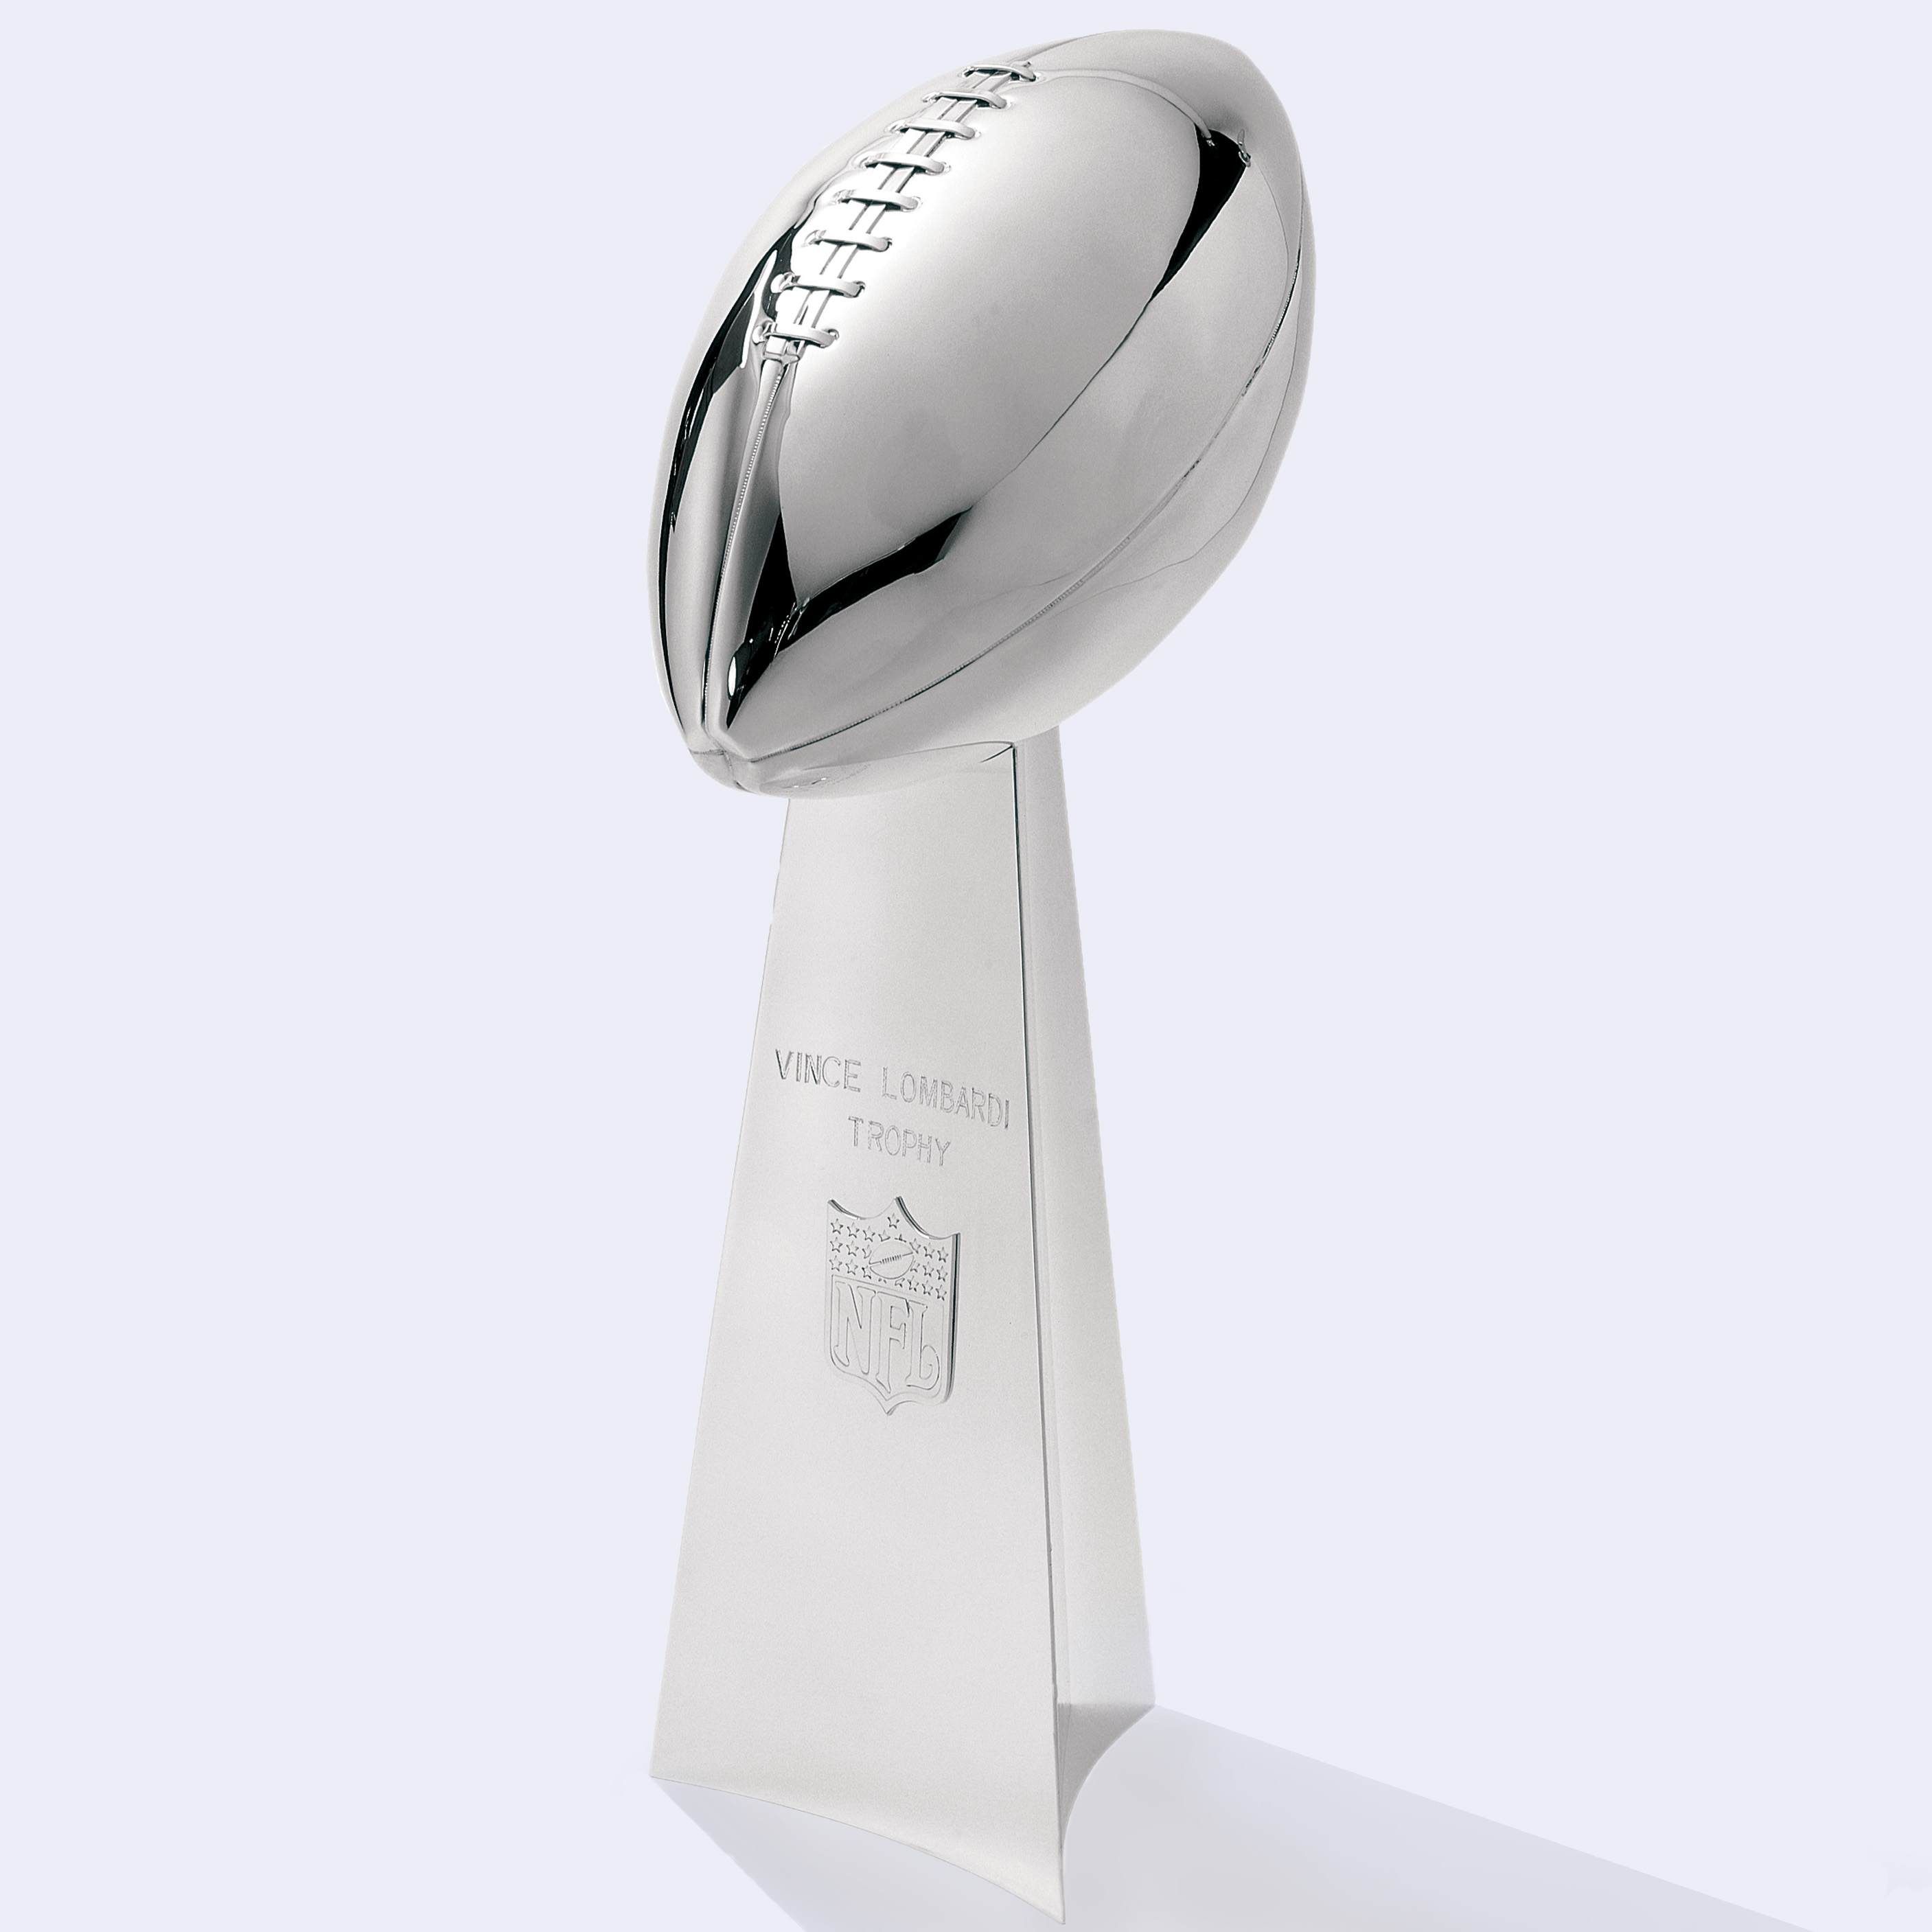 Image result for lombardi trophy""